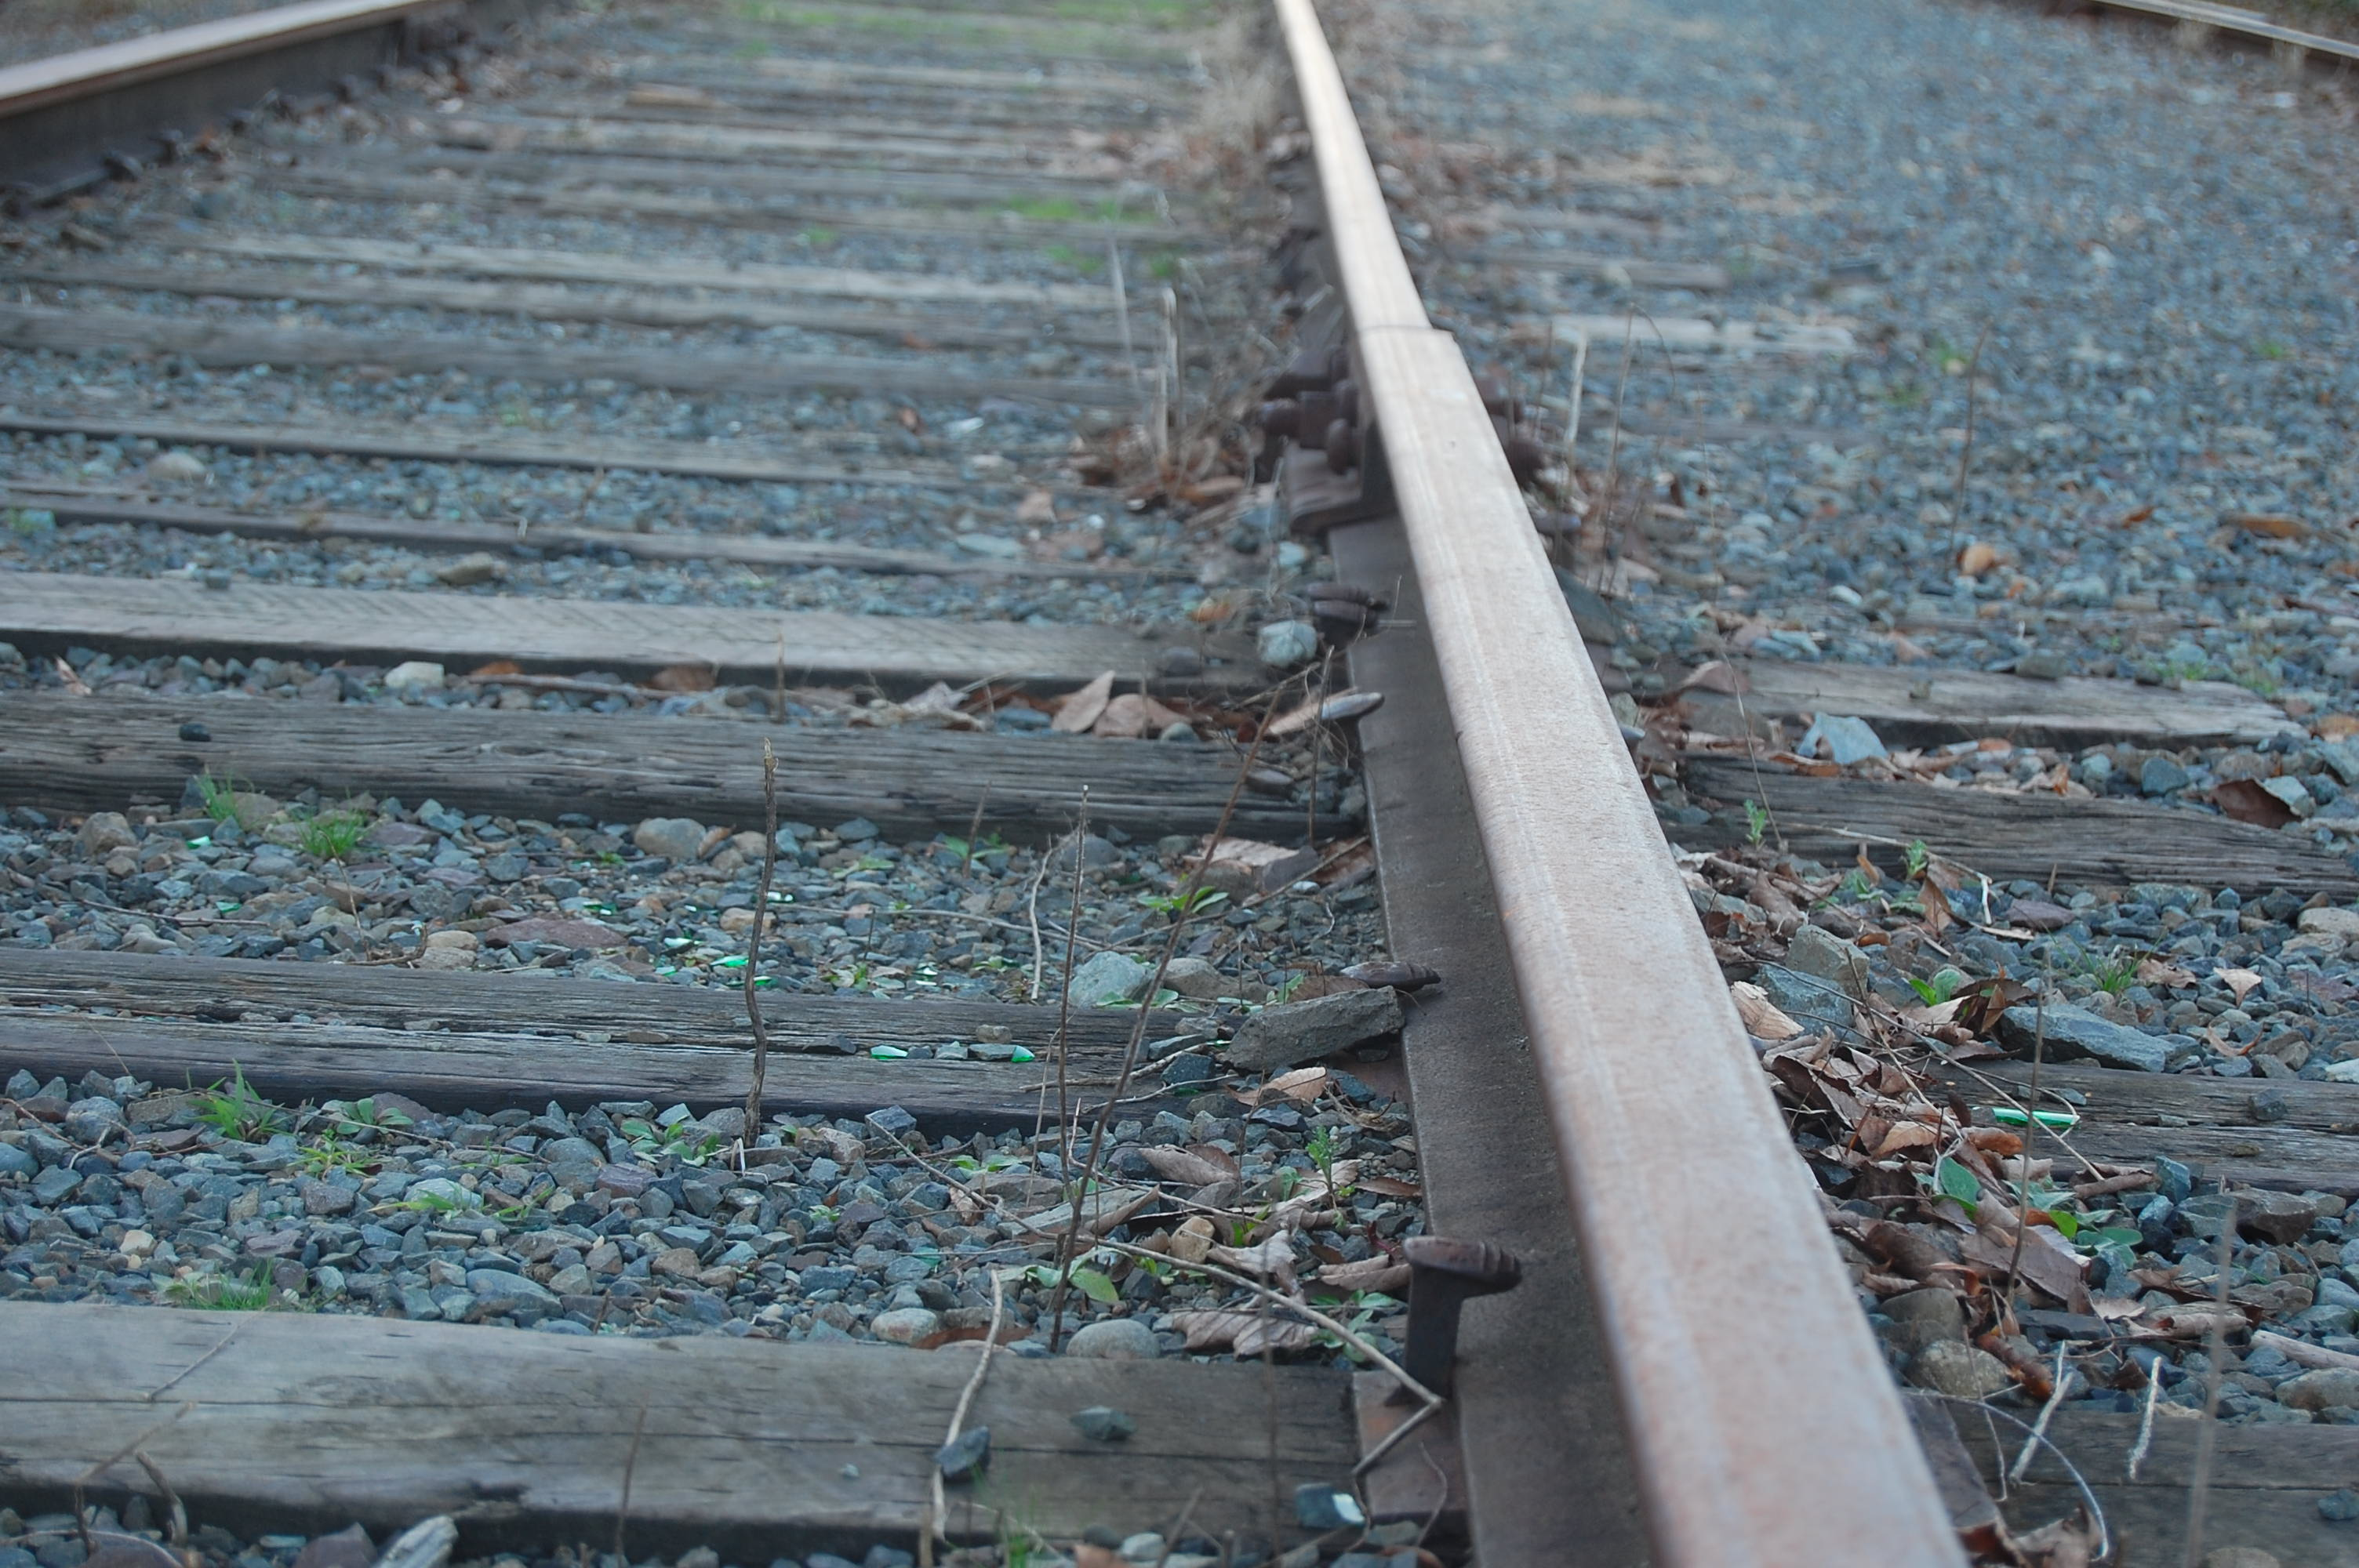 Railway track moving away into the distance